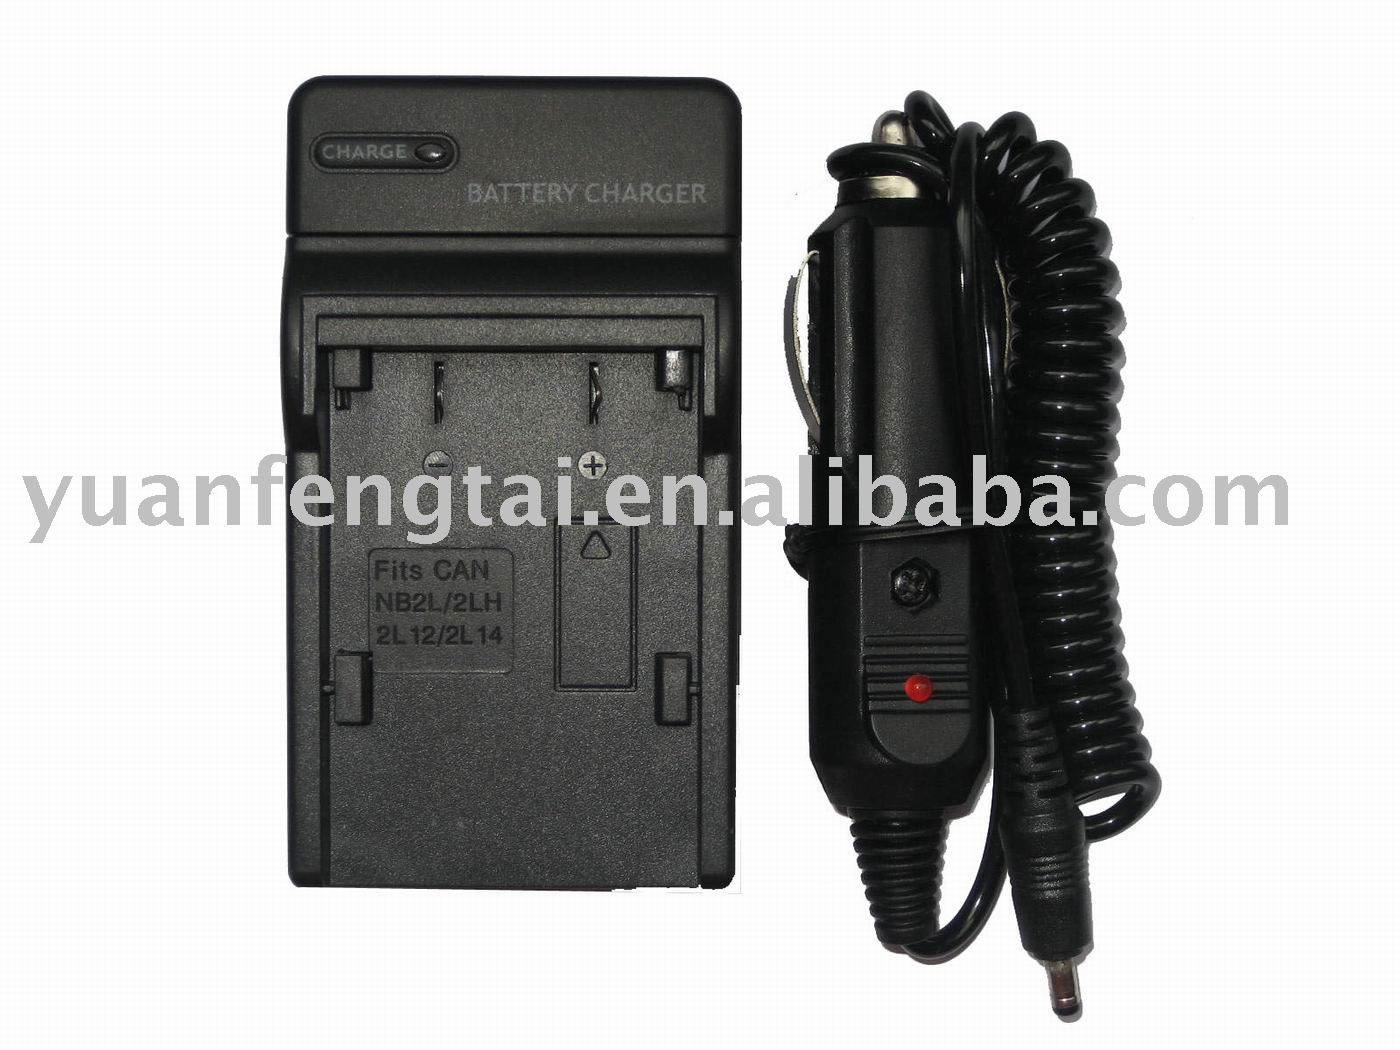 Digital Camera Battery Charger for Casio CNP-50